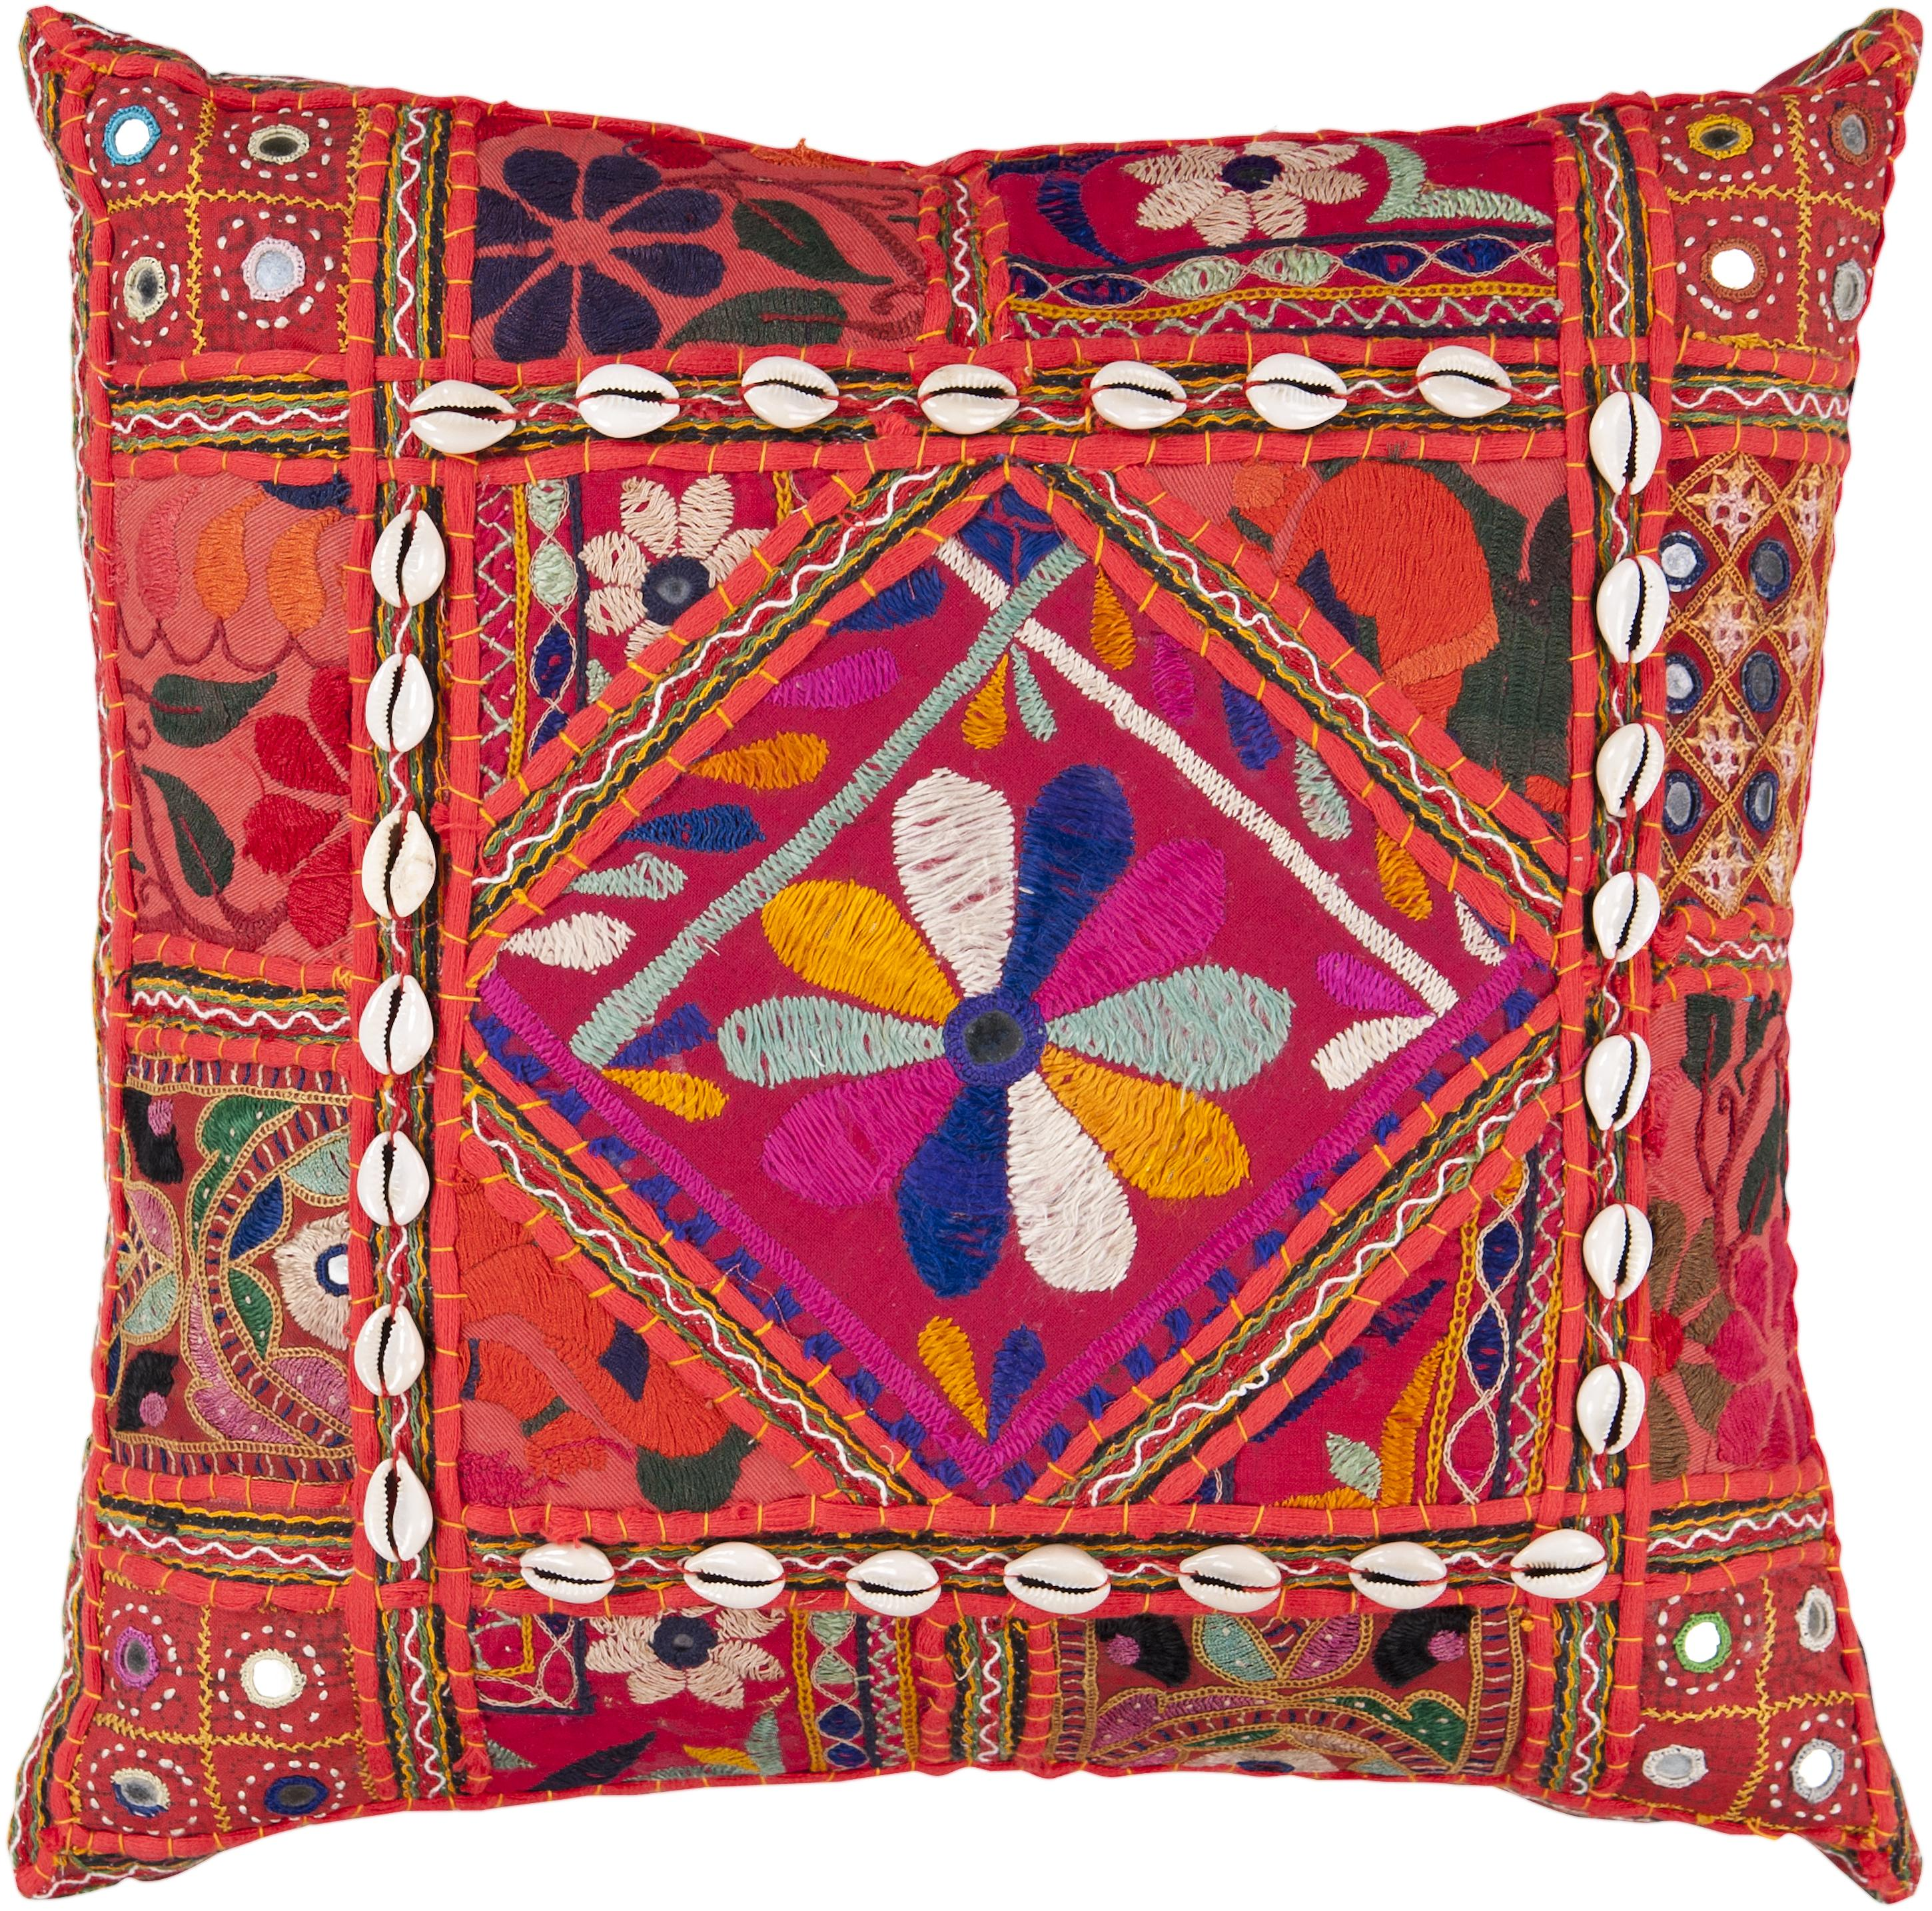 "Pillows 18"" x 18"" Pillow by Surya at Esprit Decor Home Furnishings"